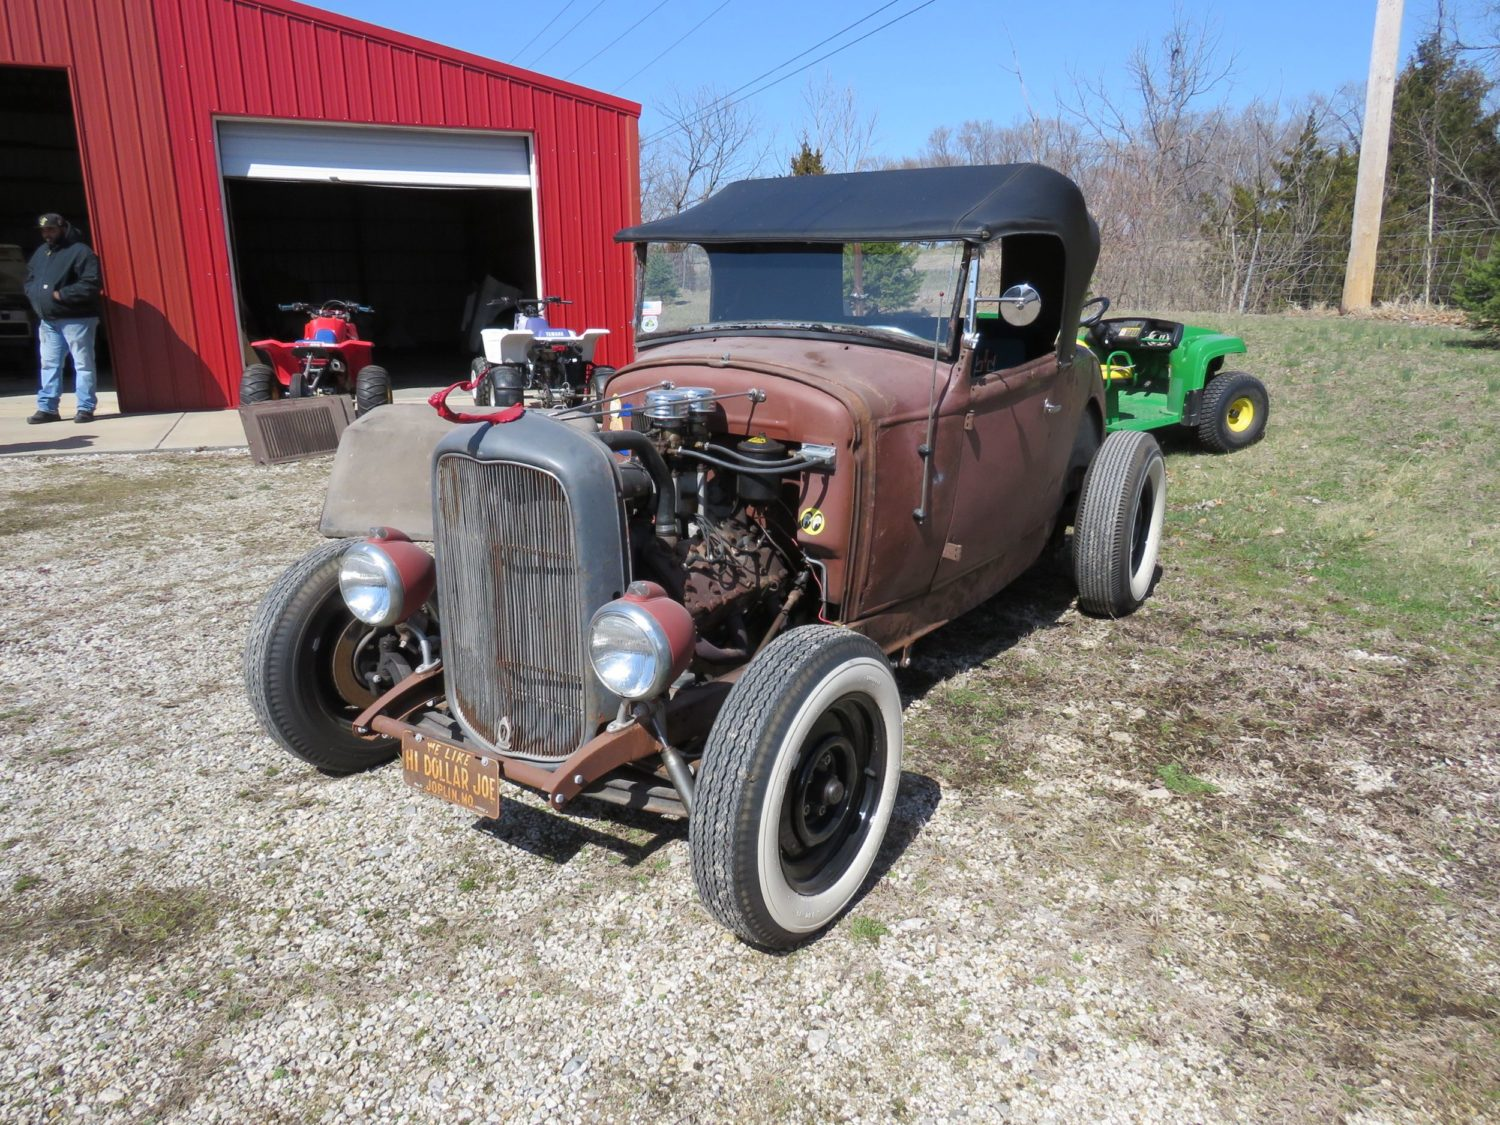 Collector Cars, Parts, Memorabilia & More – The Ron Clemens Collection - image 10